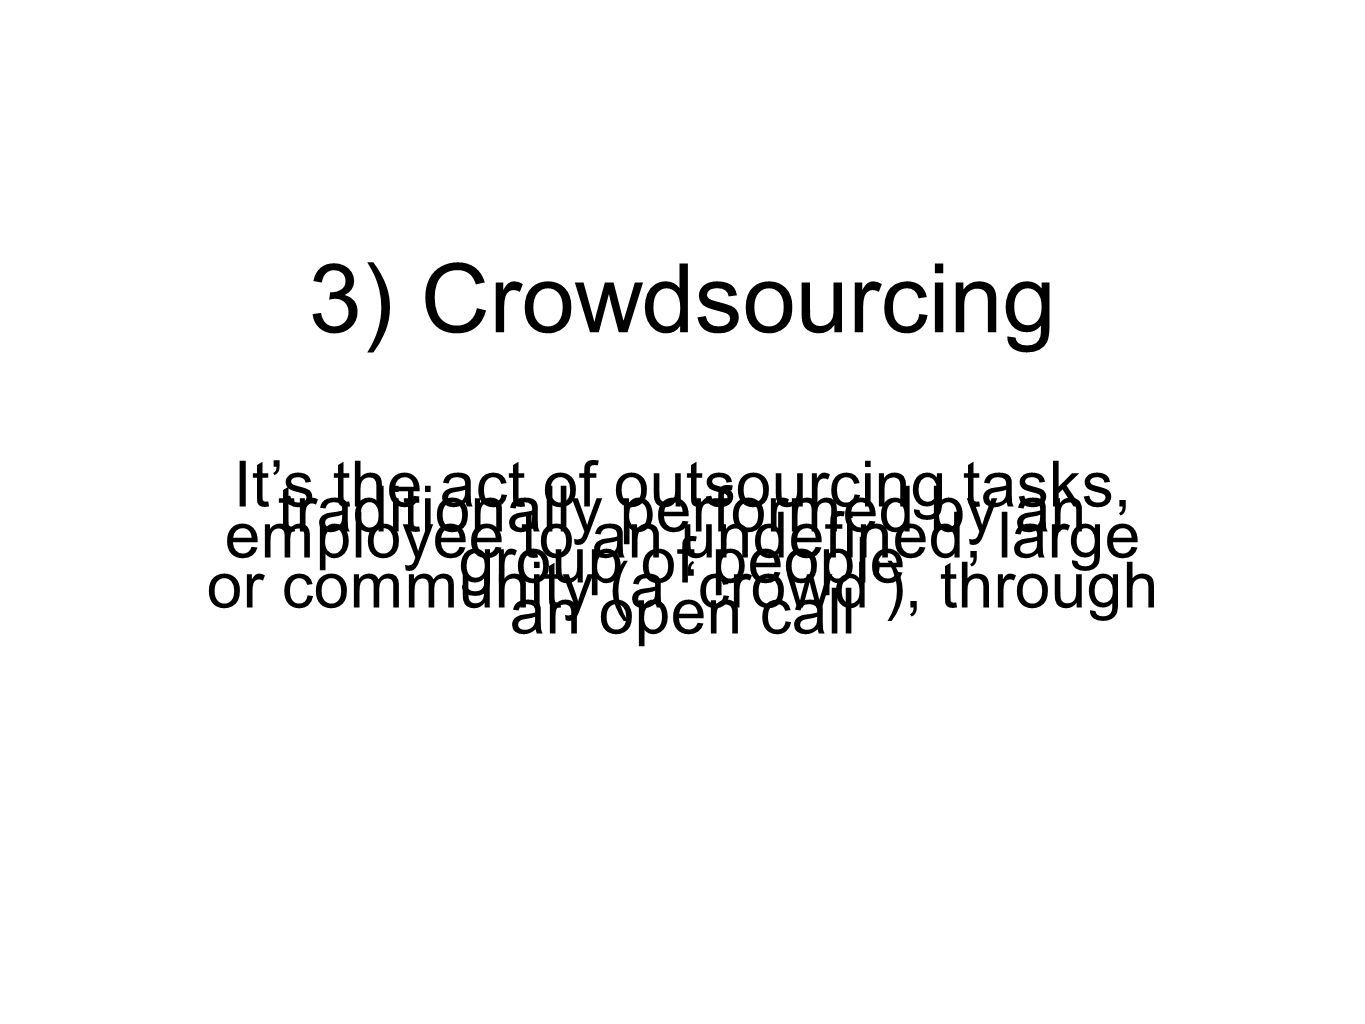 3) Crowdsourcing It's the act of outsourcing tasks, traditionally performed by an employee to an undefined, large group of people or community (a 'crowd'), through an open call